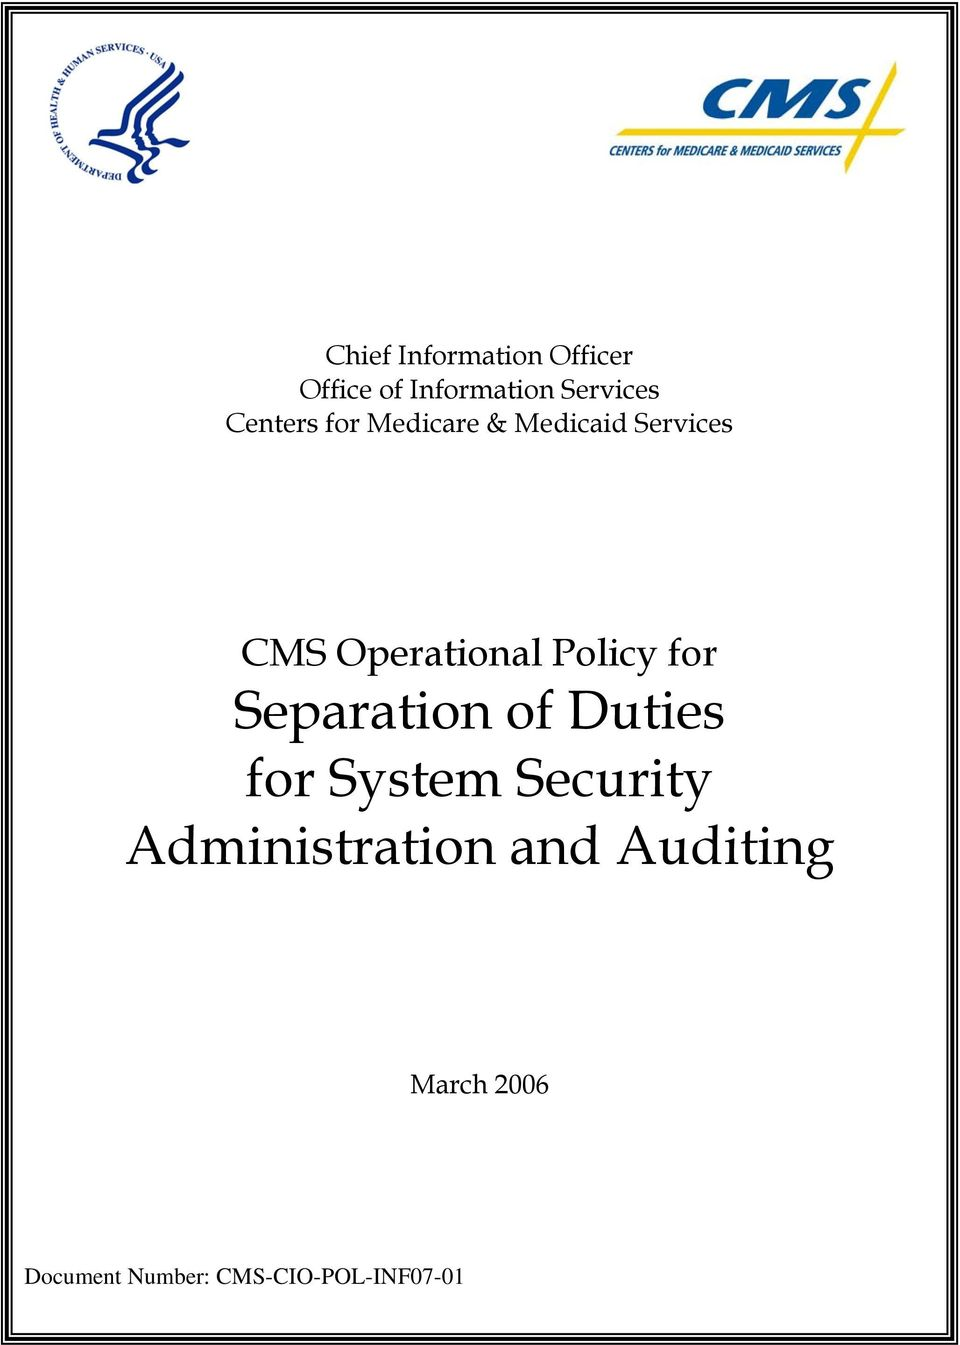 Policy for Separation of Duties for System Security